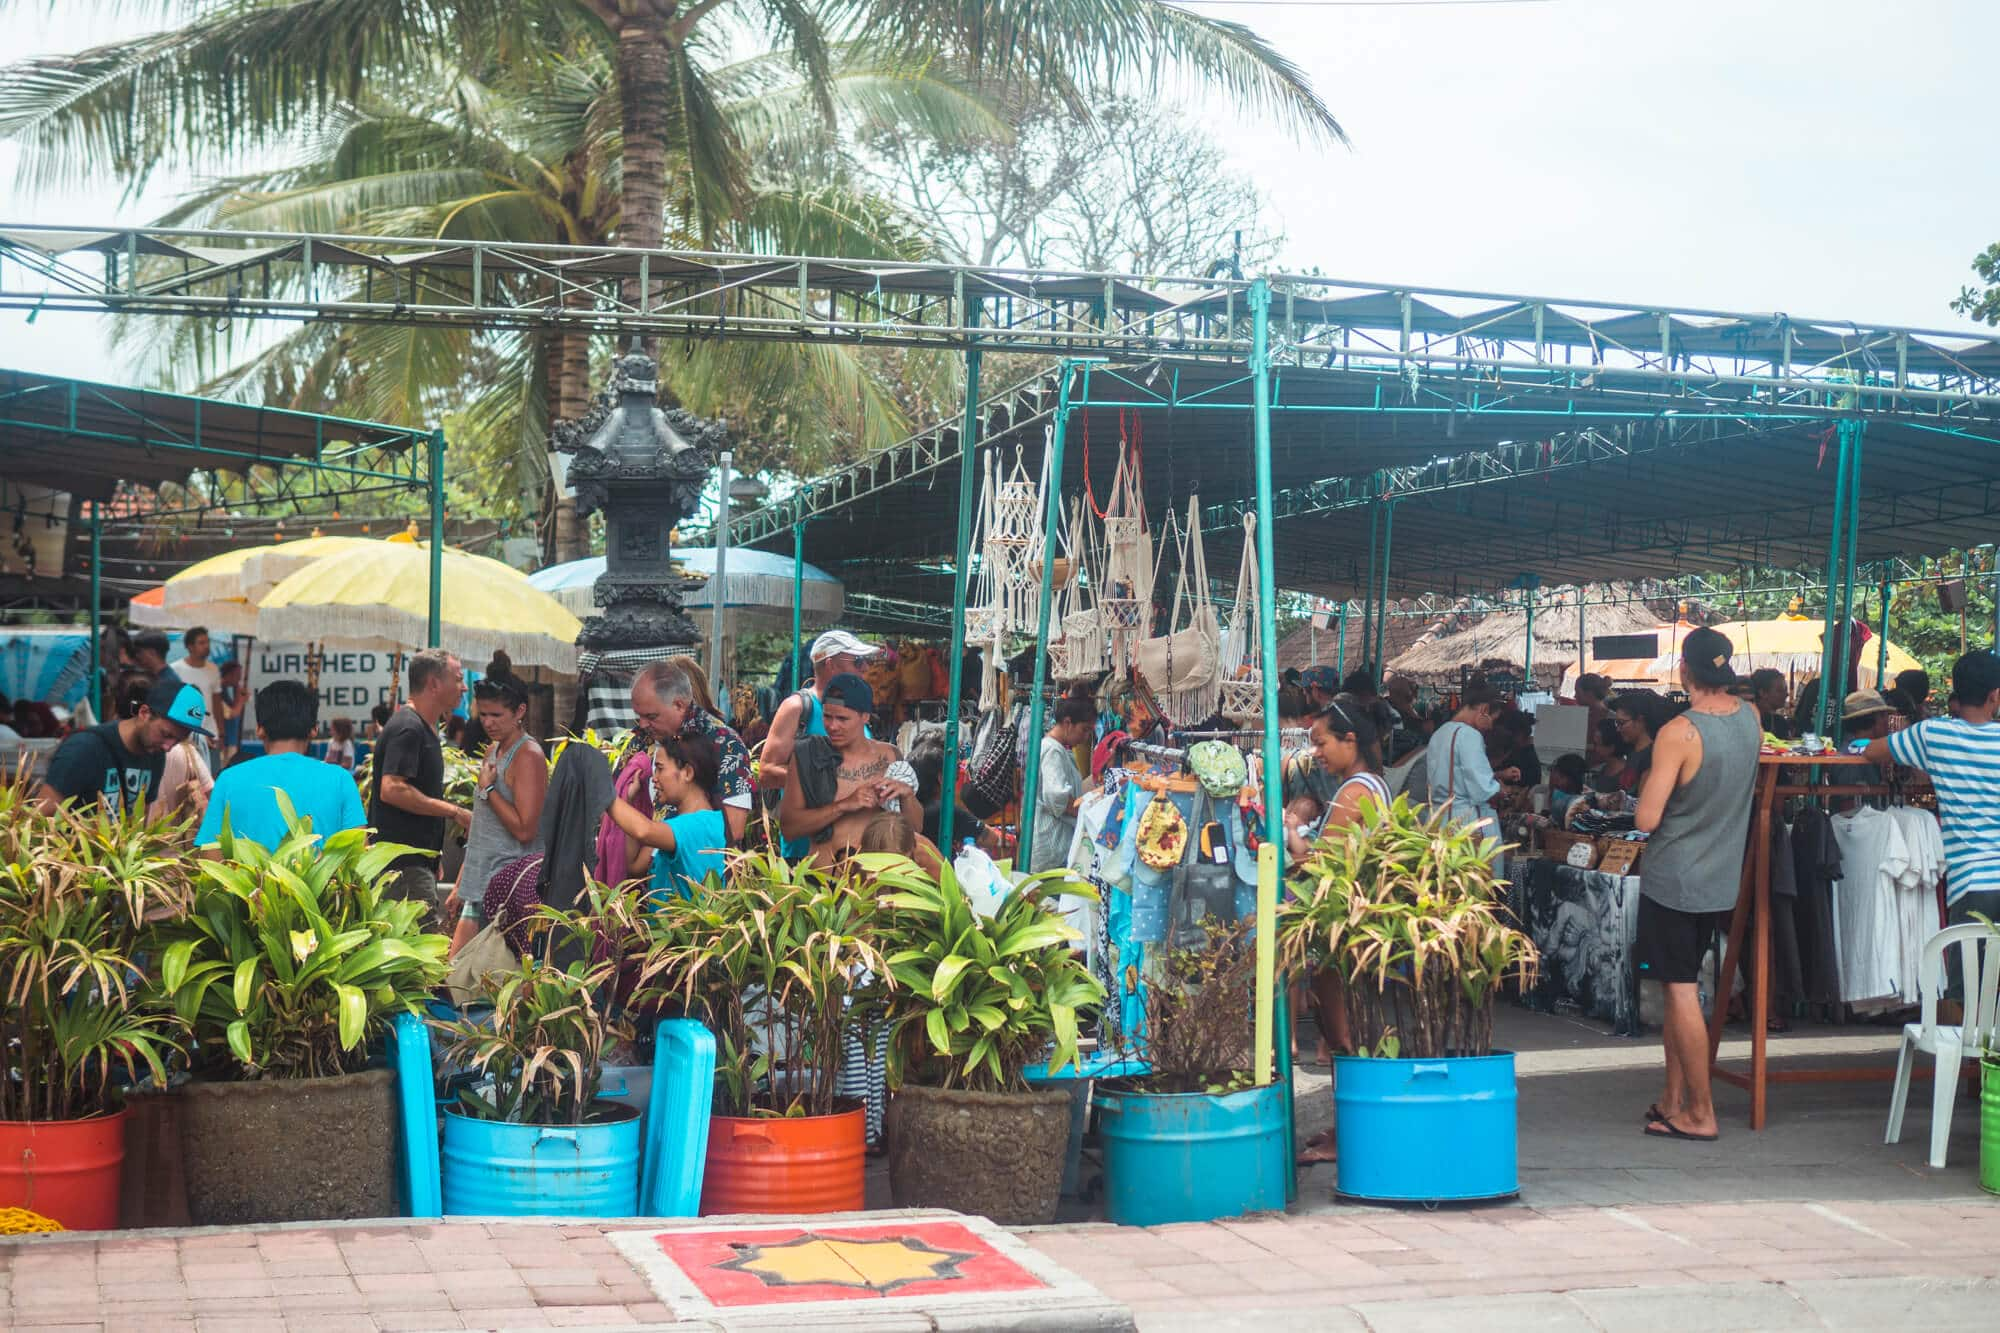 3 super cool markets in Canggu, Bali where you can buy jewelry, organic food, natural skin care, vintage clothing and other beautiful handicrafts - Old Man's Saturday Market